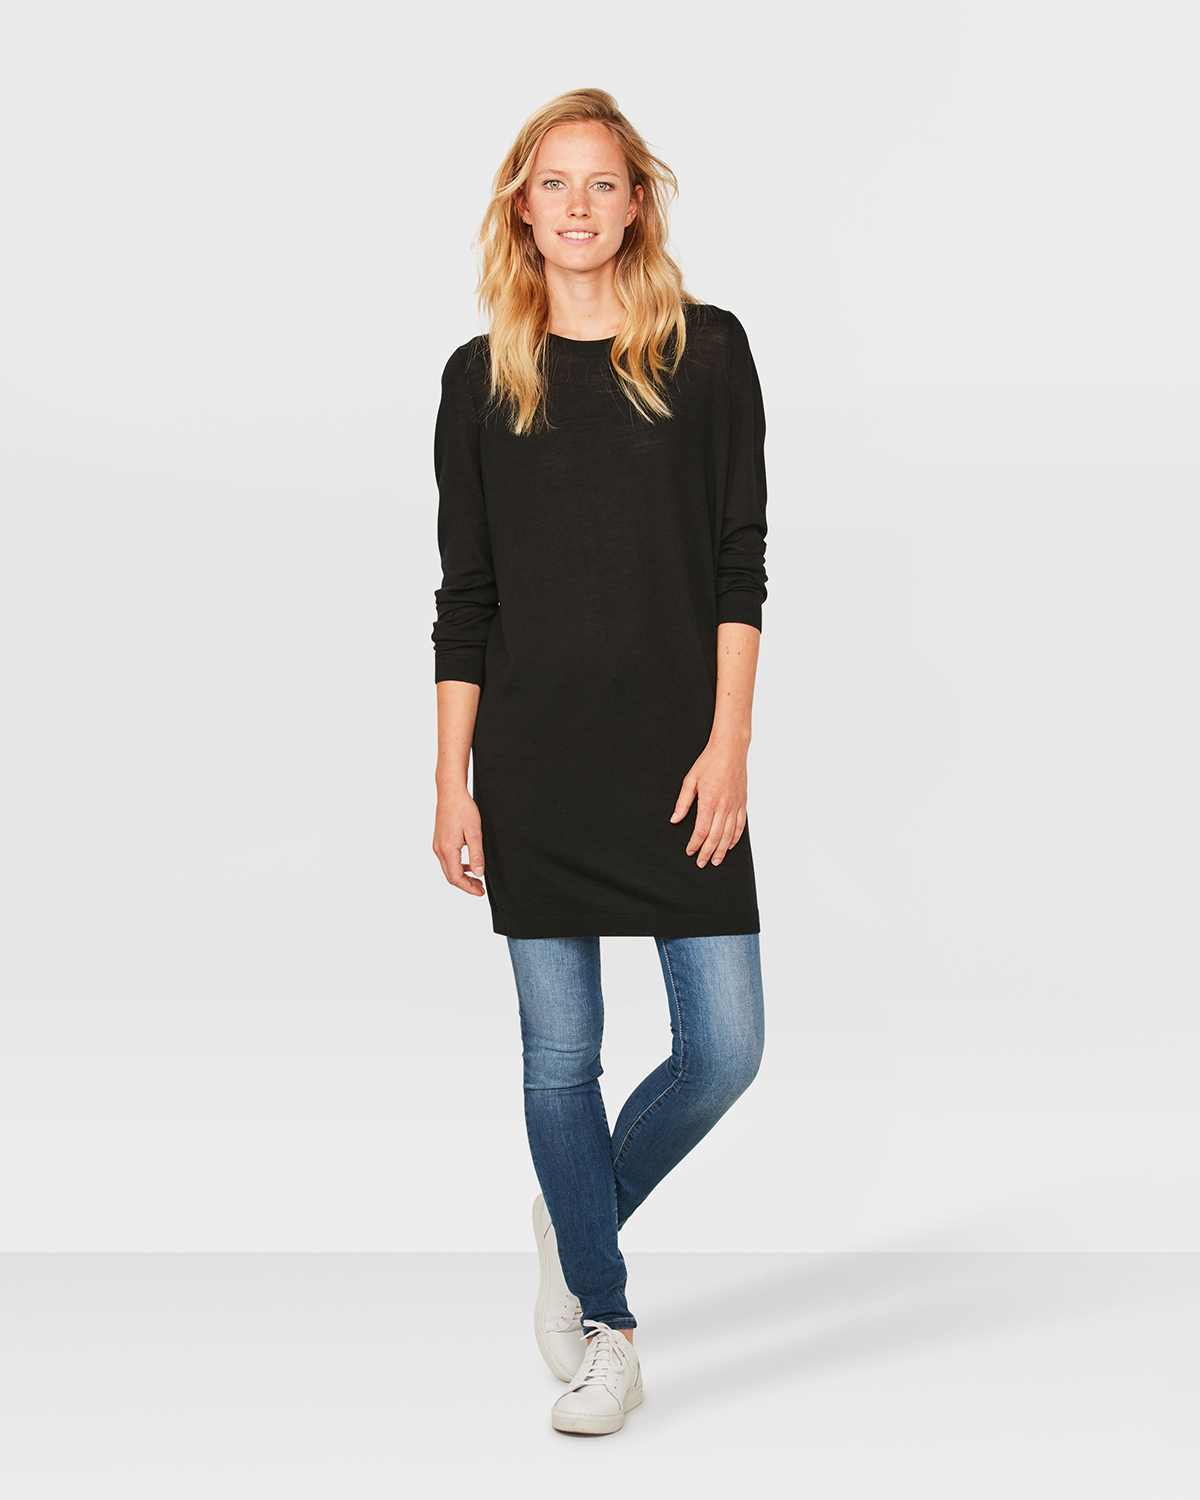 Jurk Trui.Dames Merino Wol Knit Jurk 79963879 We Fashion